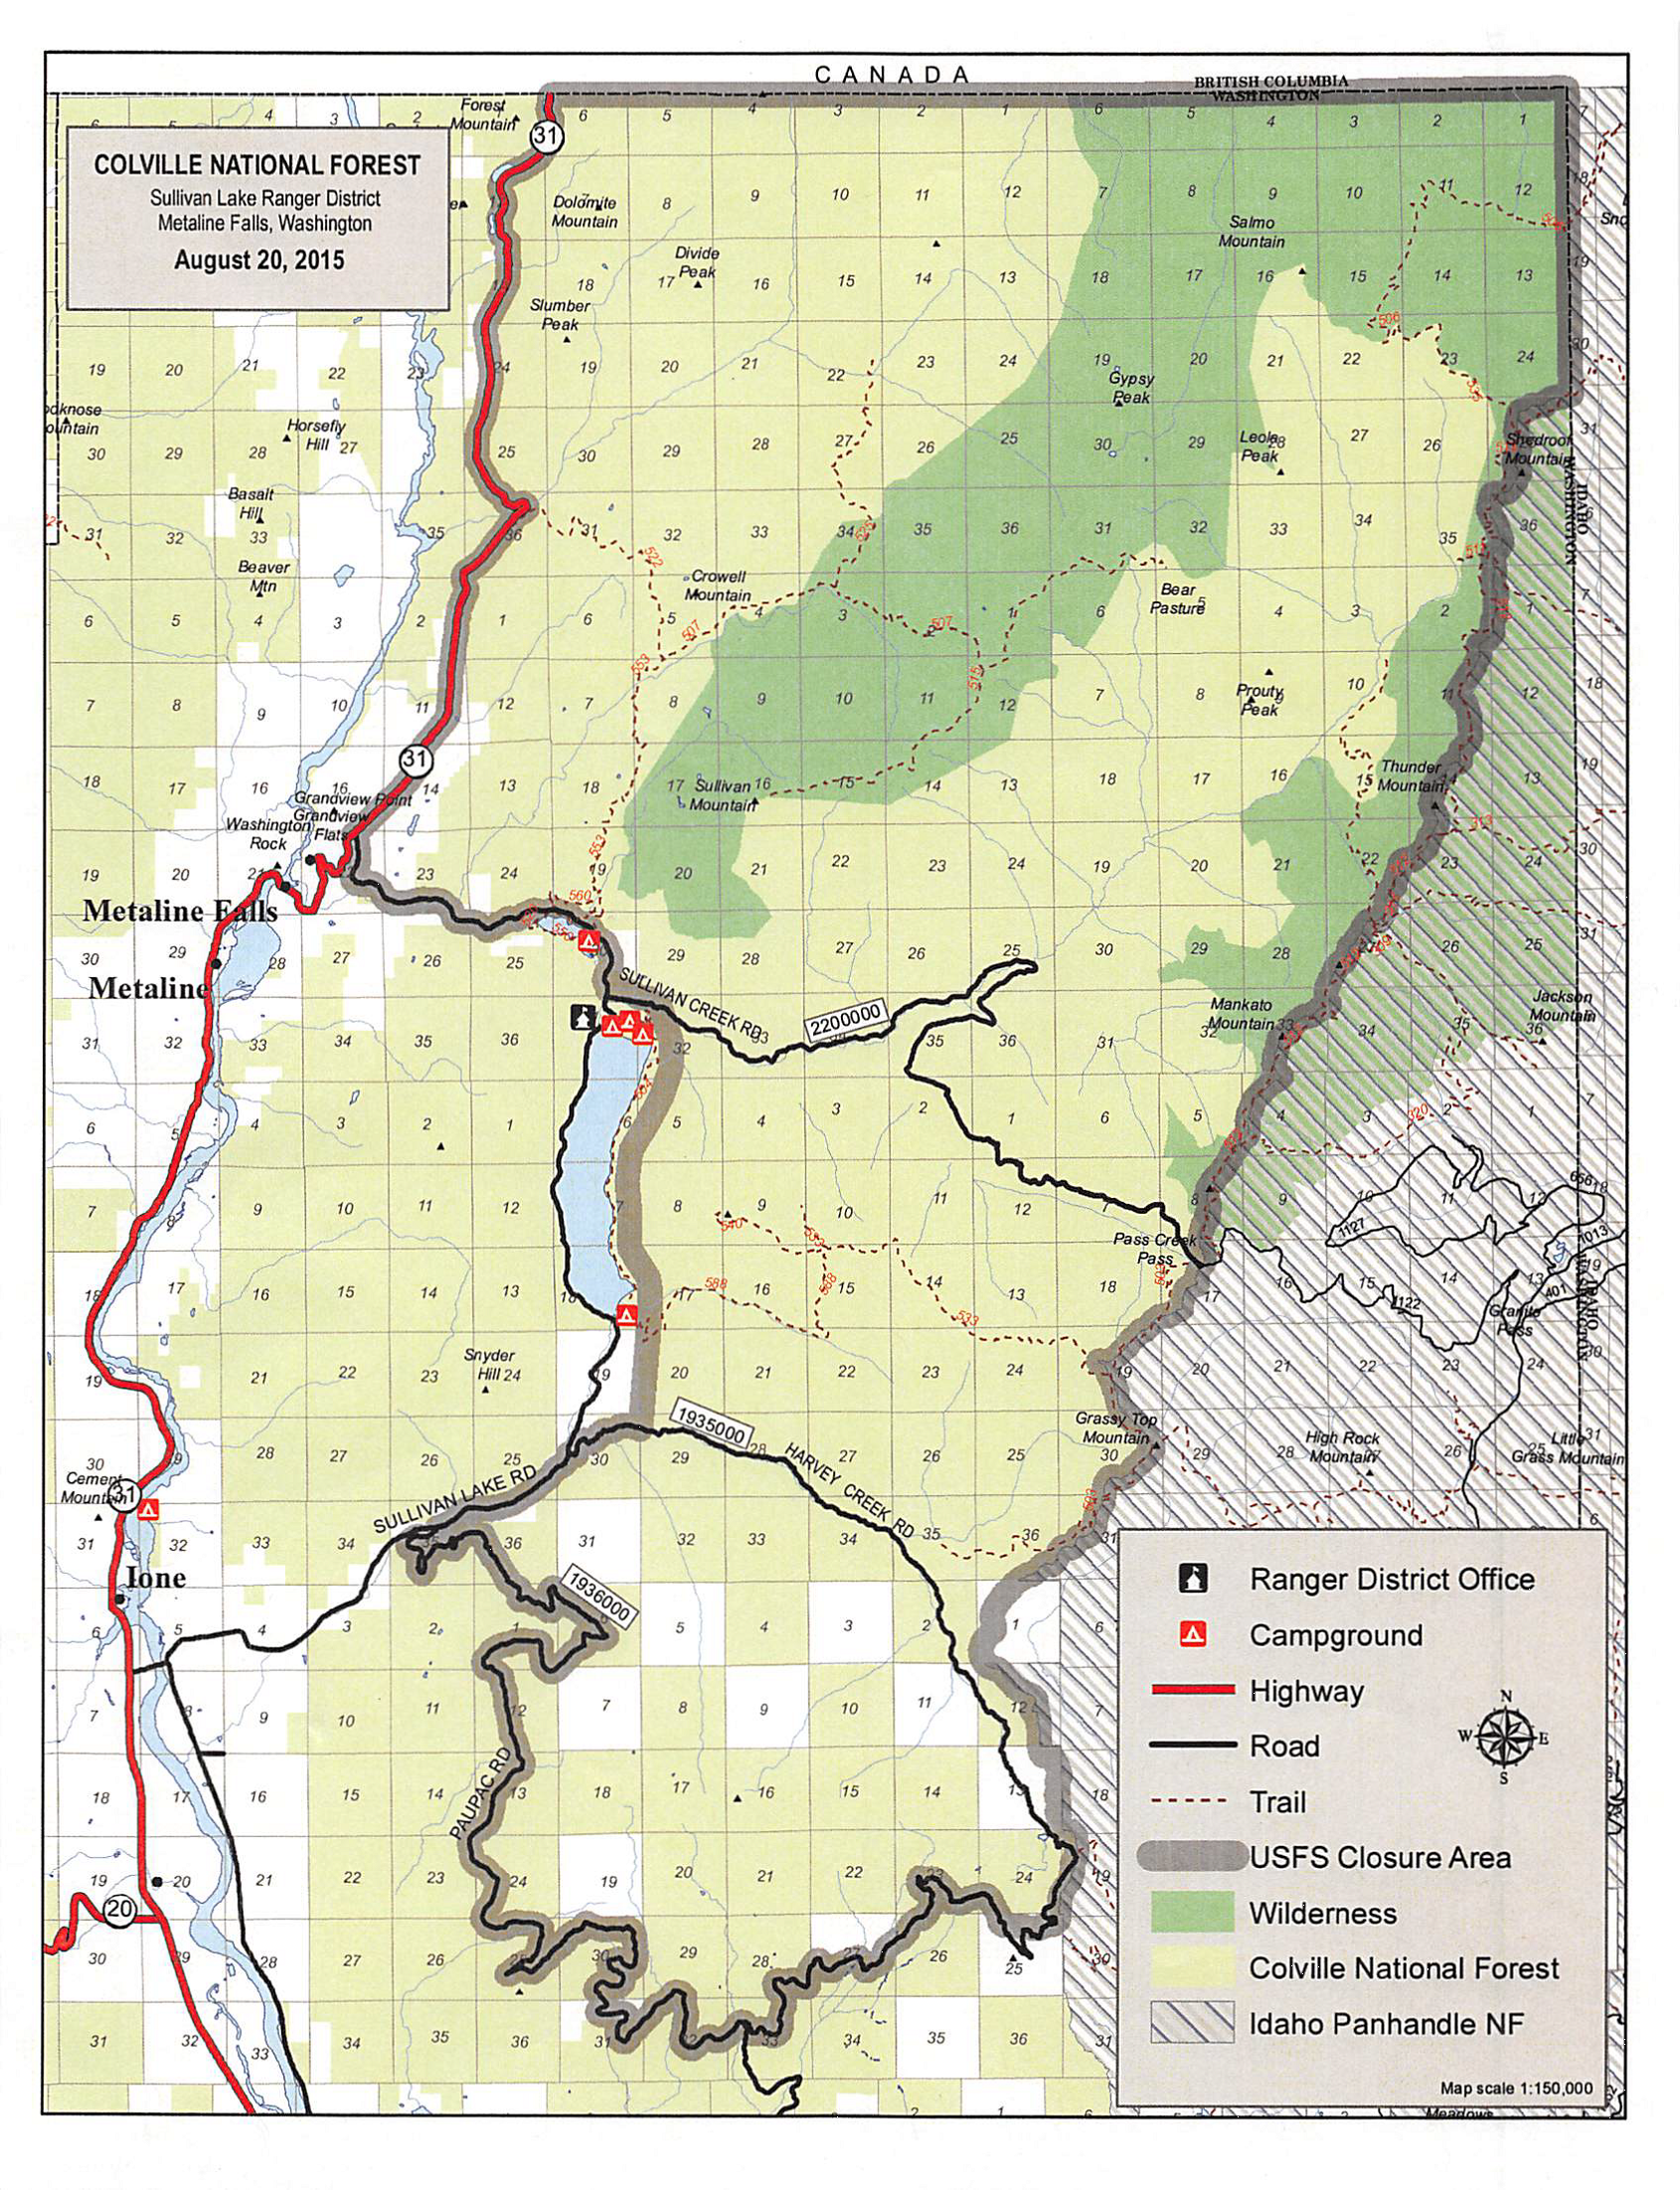 Spokane Wildfire Map.Fire Activity Causes Colville Forest To Close Huge Areas To Public